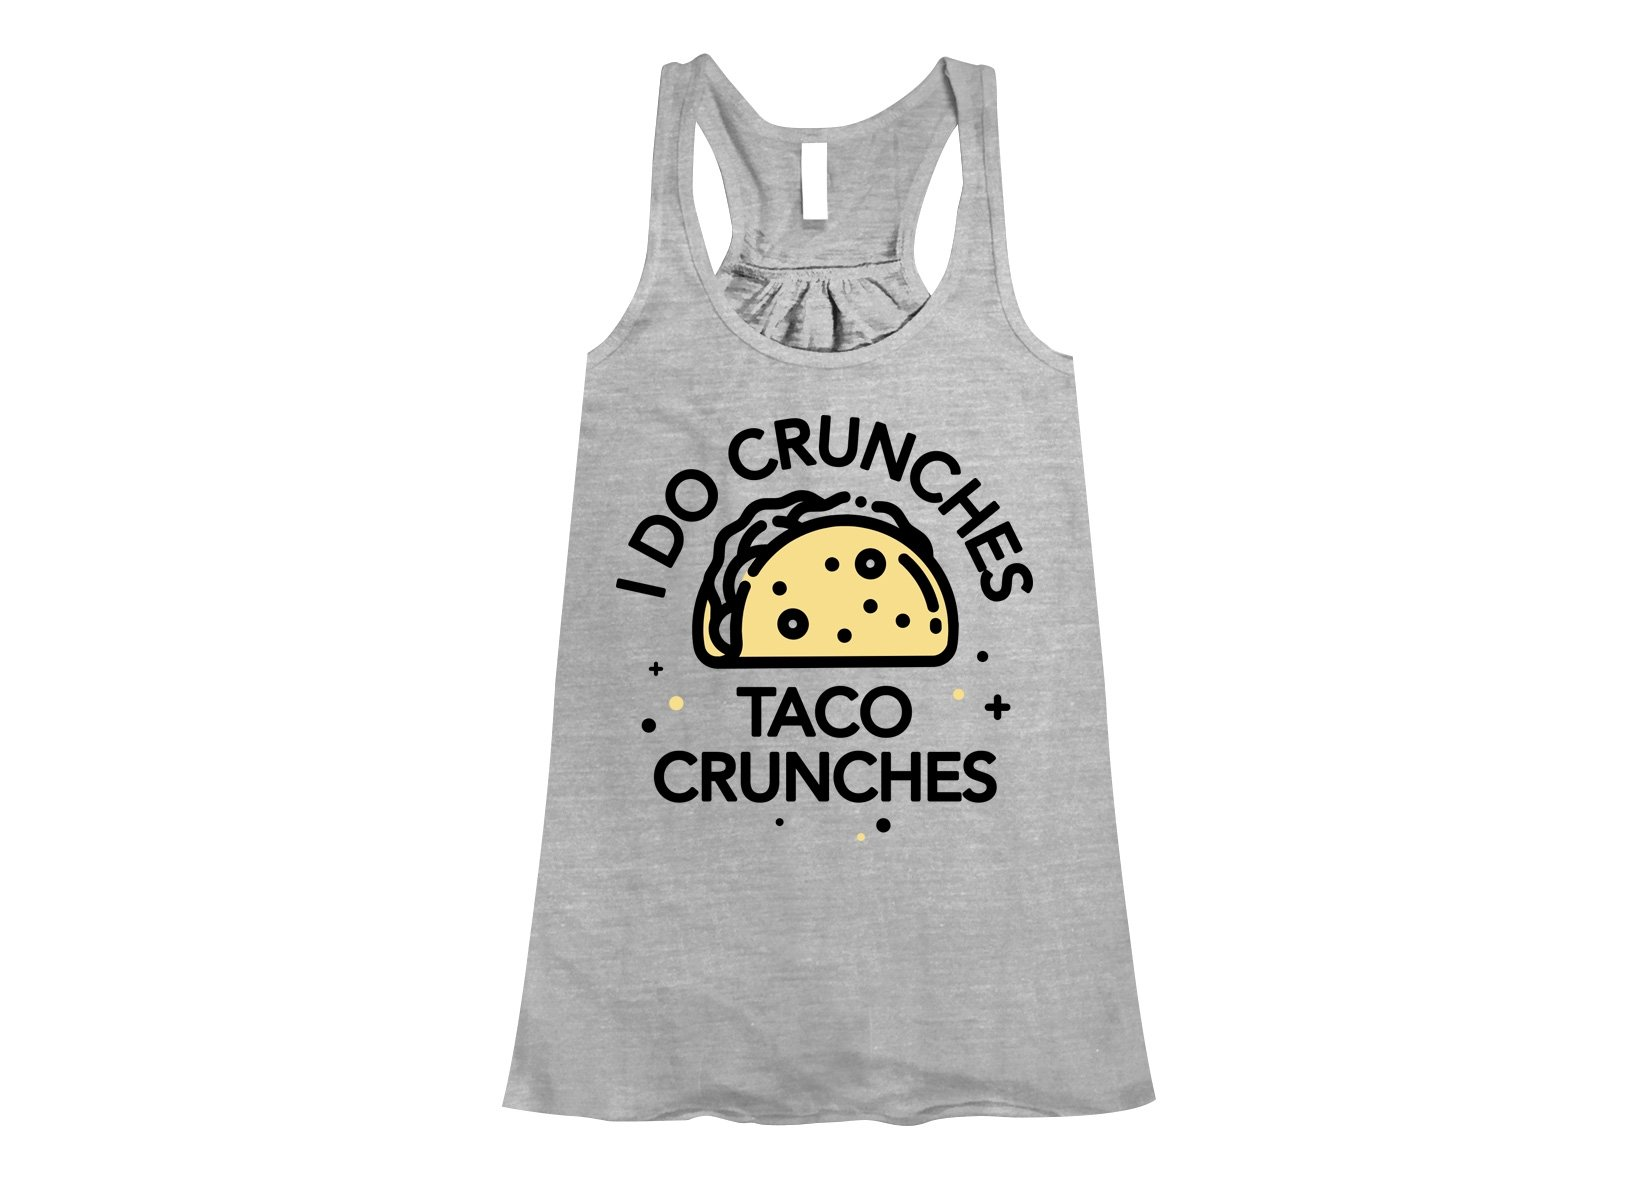 I Do Crunches Taco Crunches on Womens Tanks T-Shirt